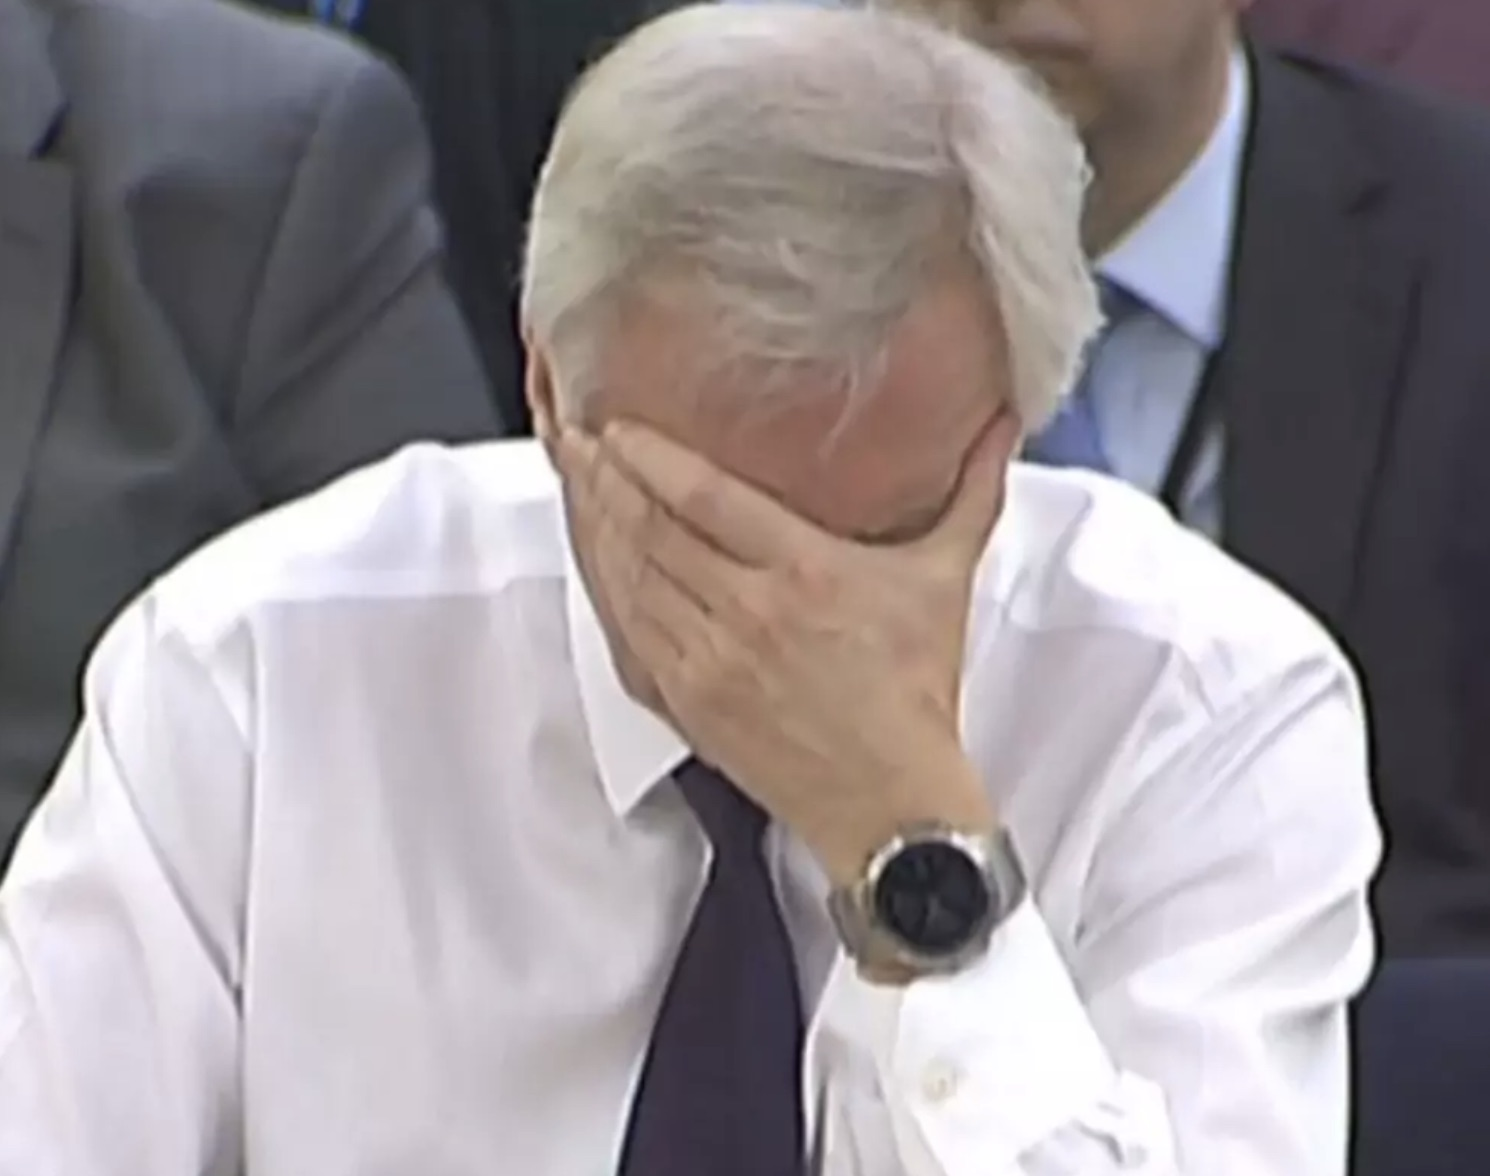 David Davis, House of Commons Brexit Select Committee, 6th December 2017